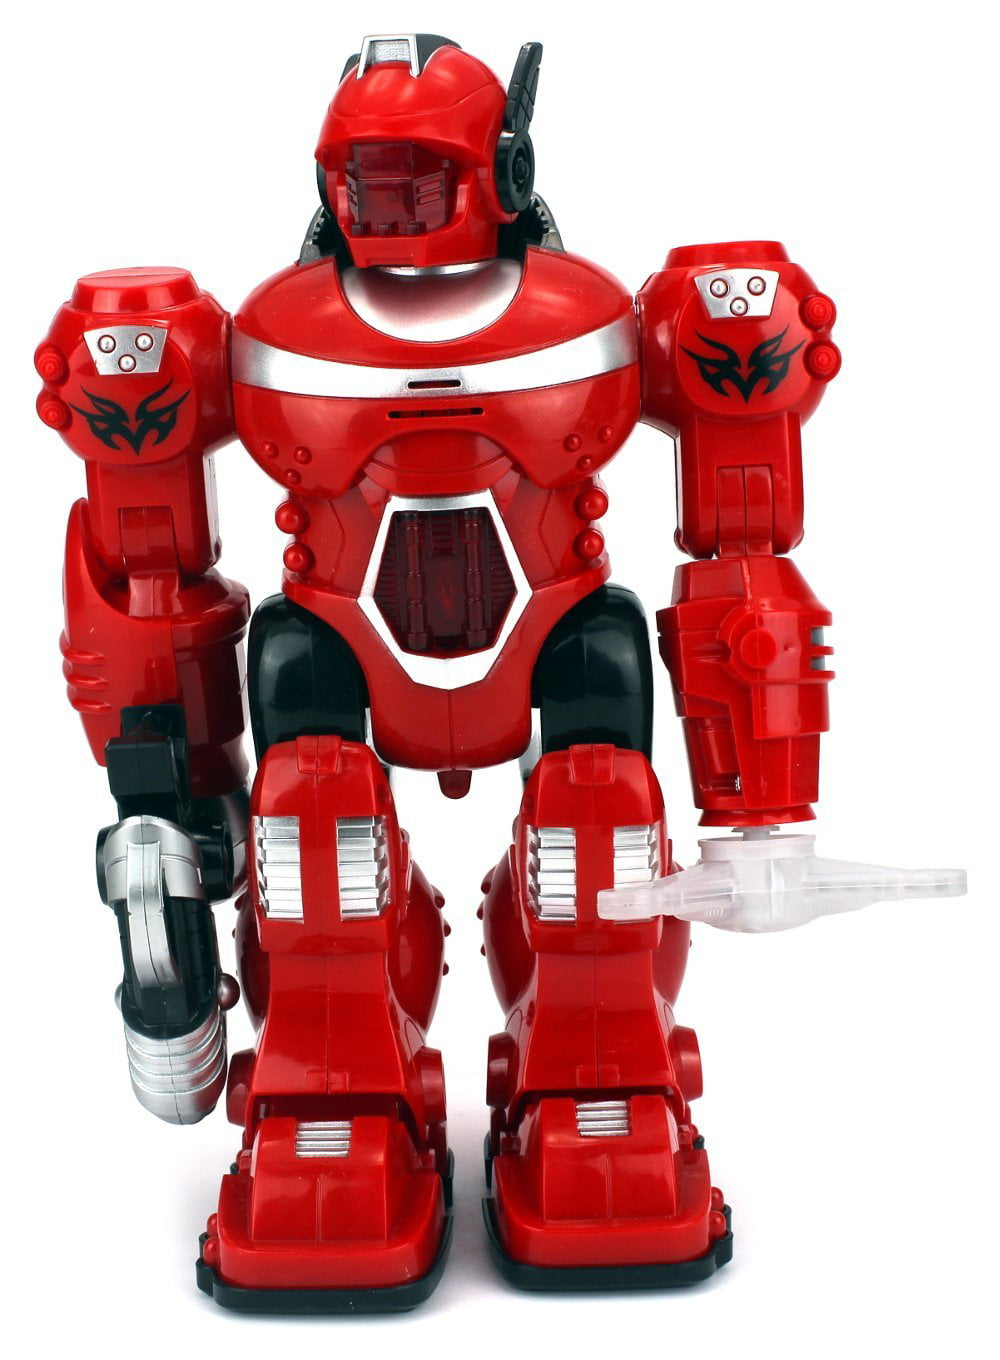 Android General Children's Toy Robot Figure w  Lights, Sounds, Realistic Walking Action... by Velocity Toys